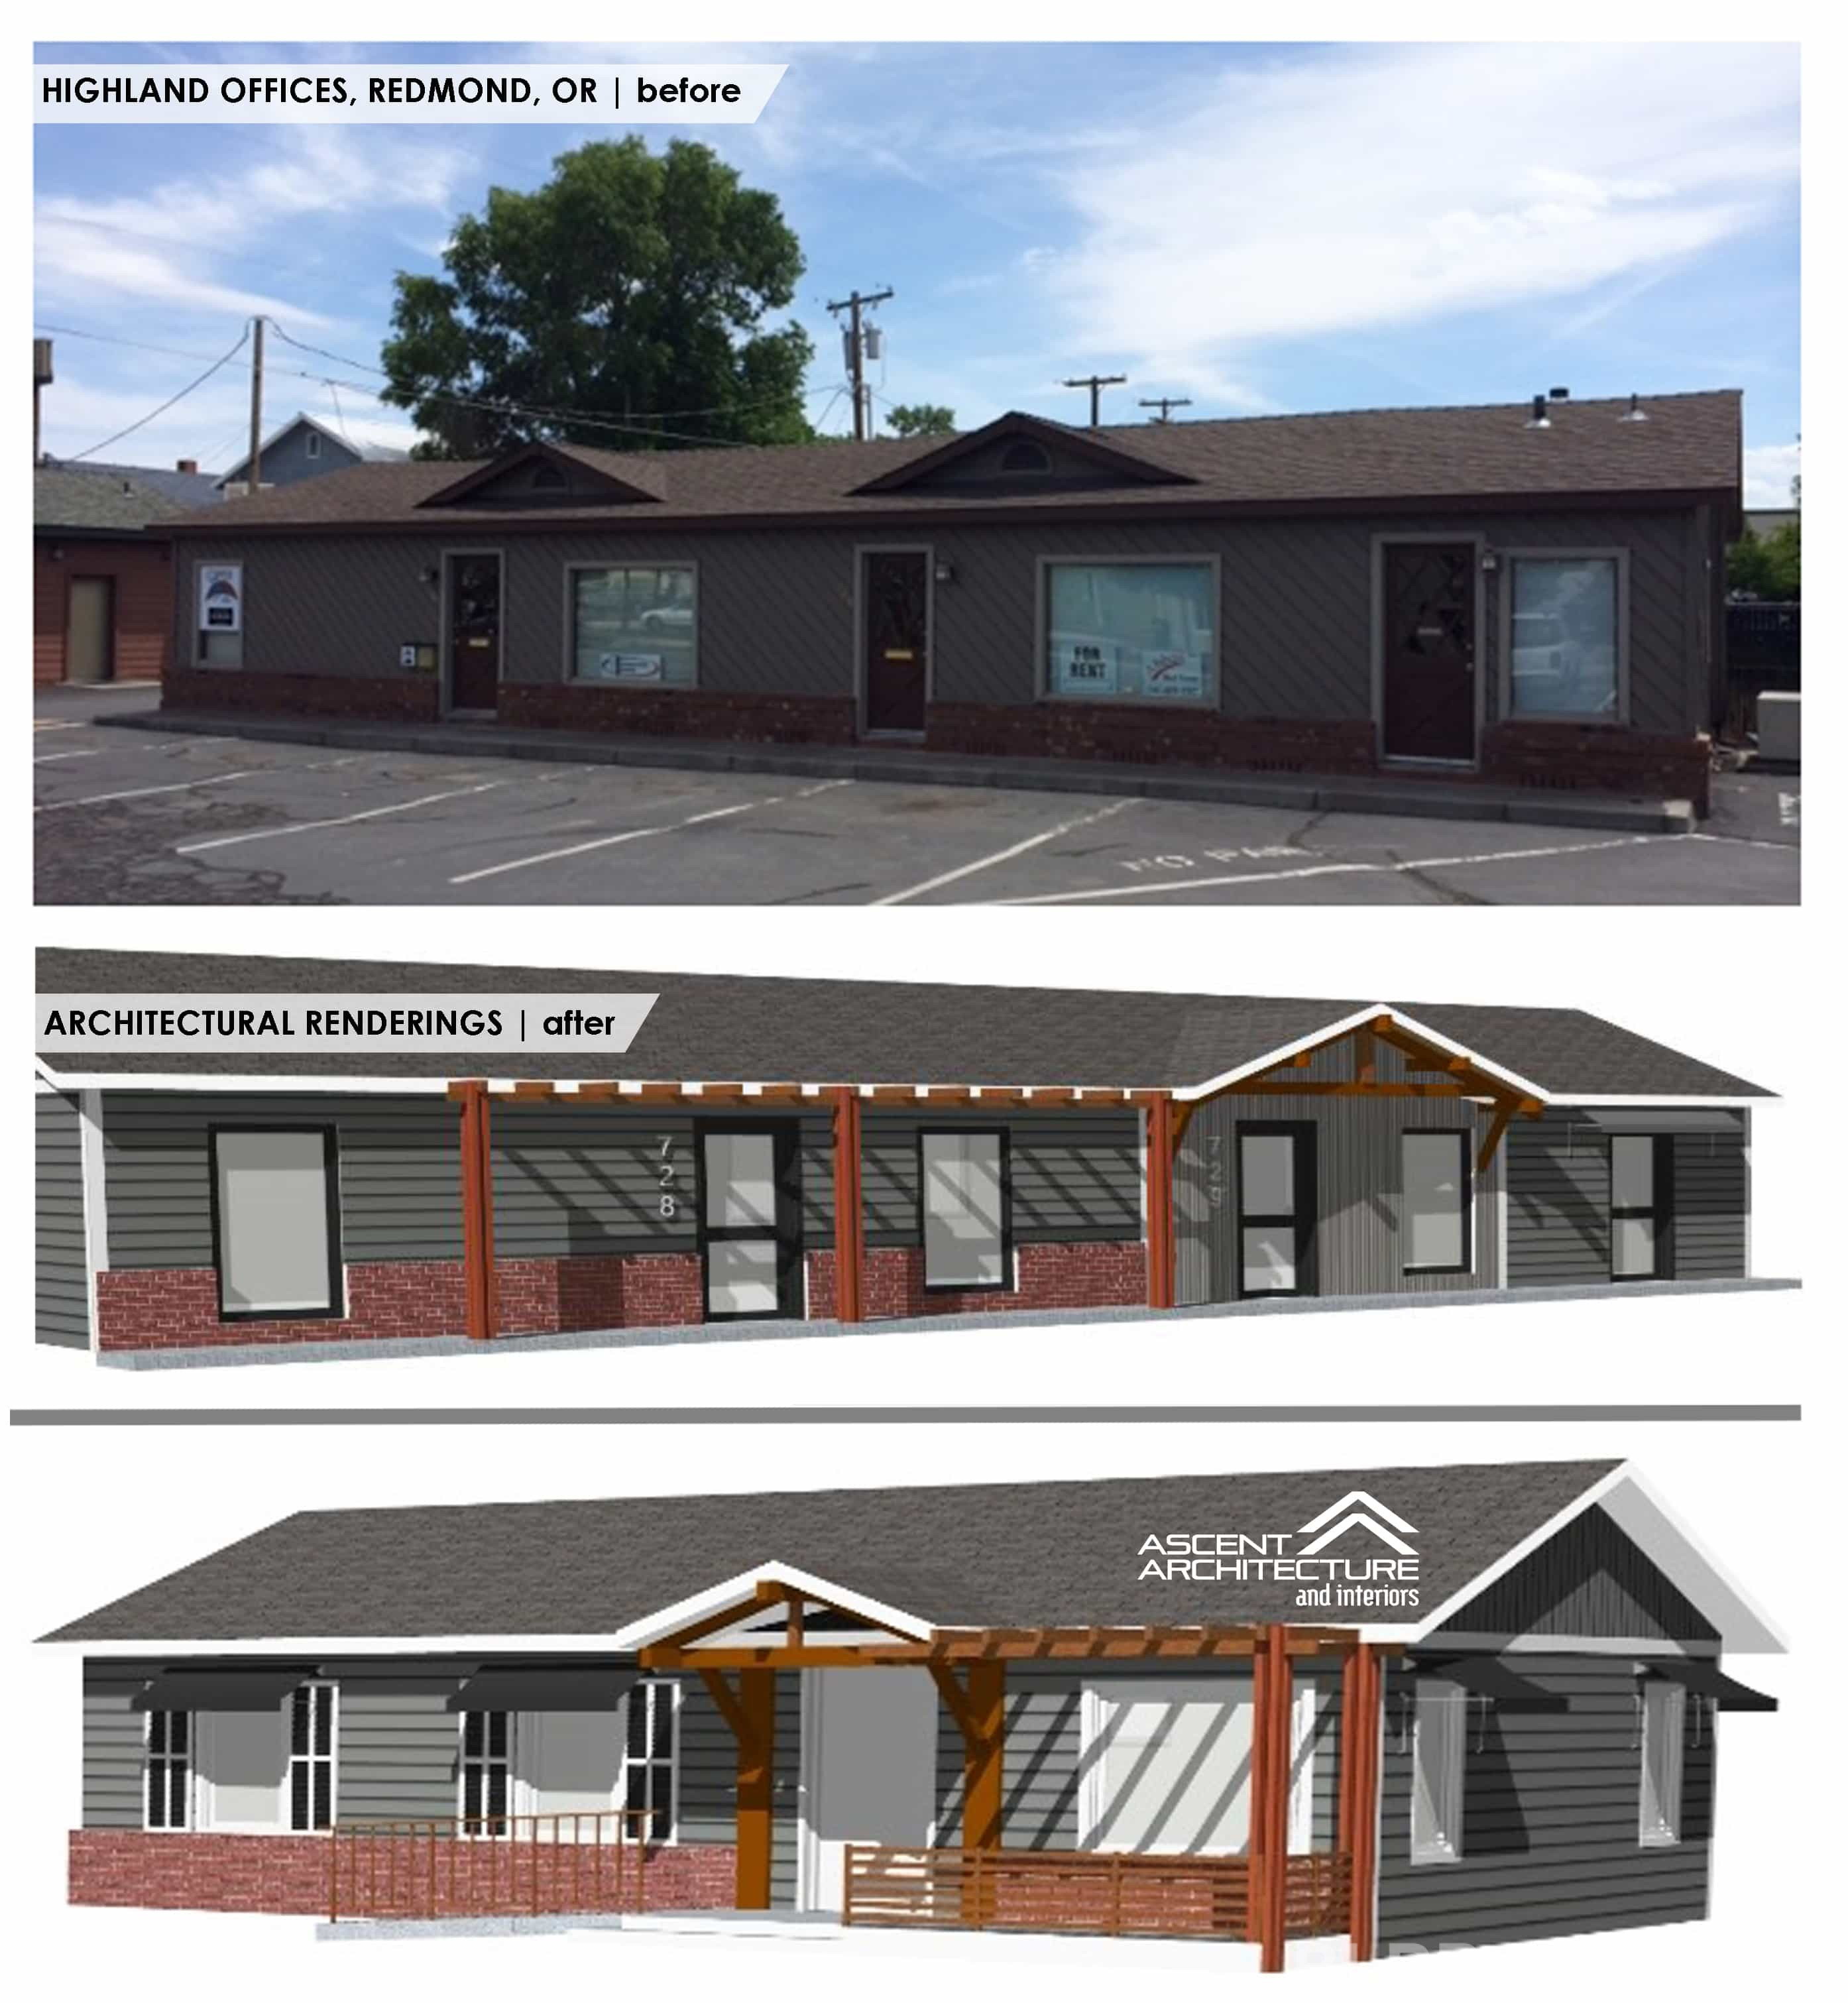 Bend Oregon Apartments: Highlands Office Facade Remodel » Ascent Architecture